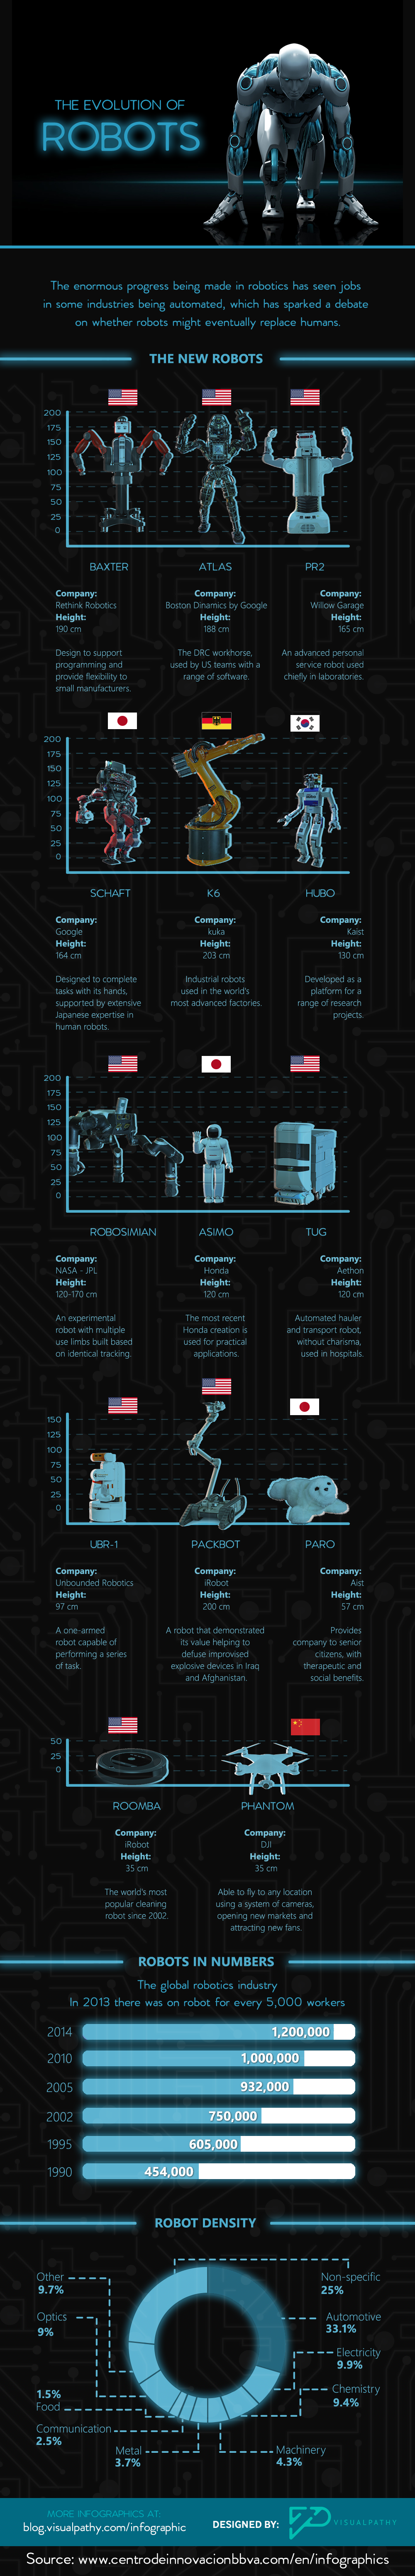 evolution technology of Robots